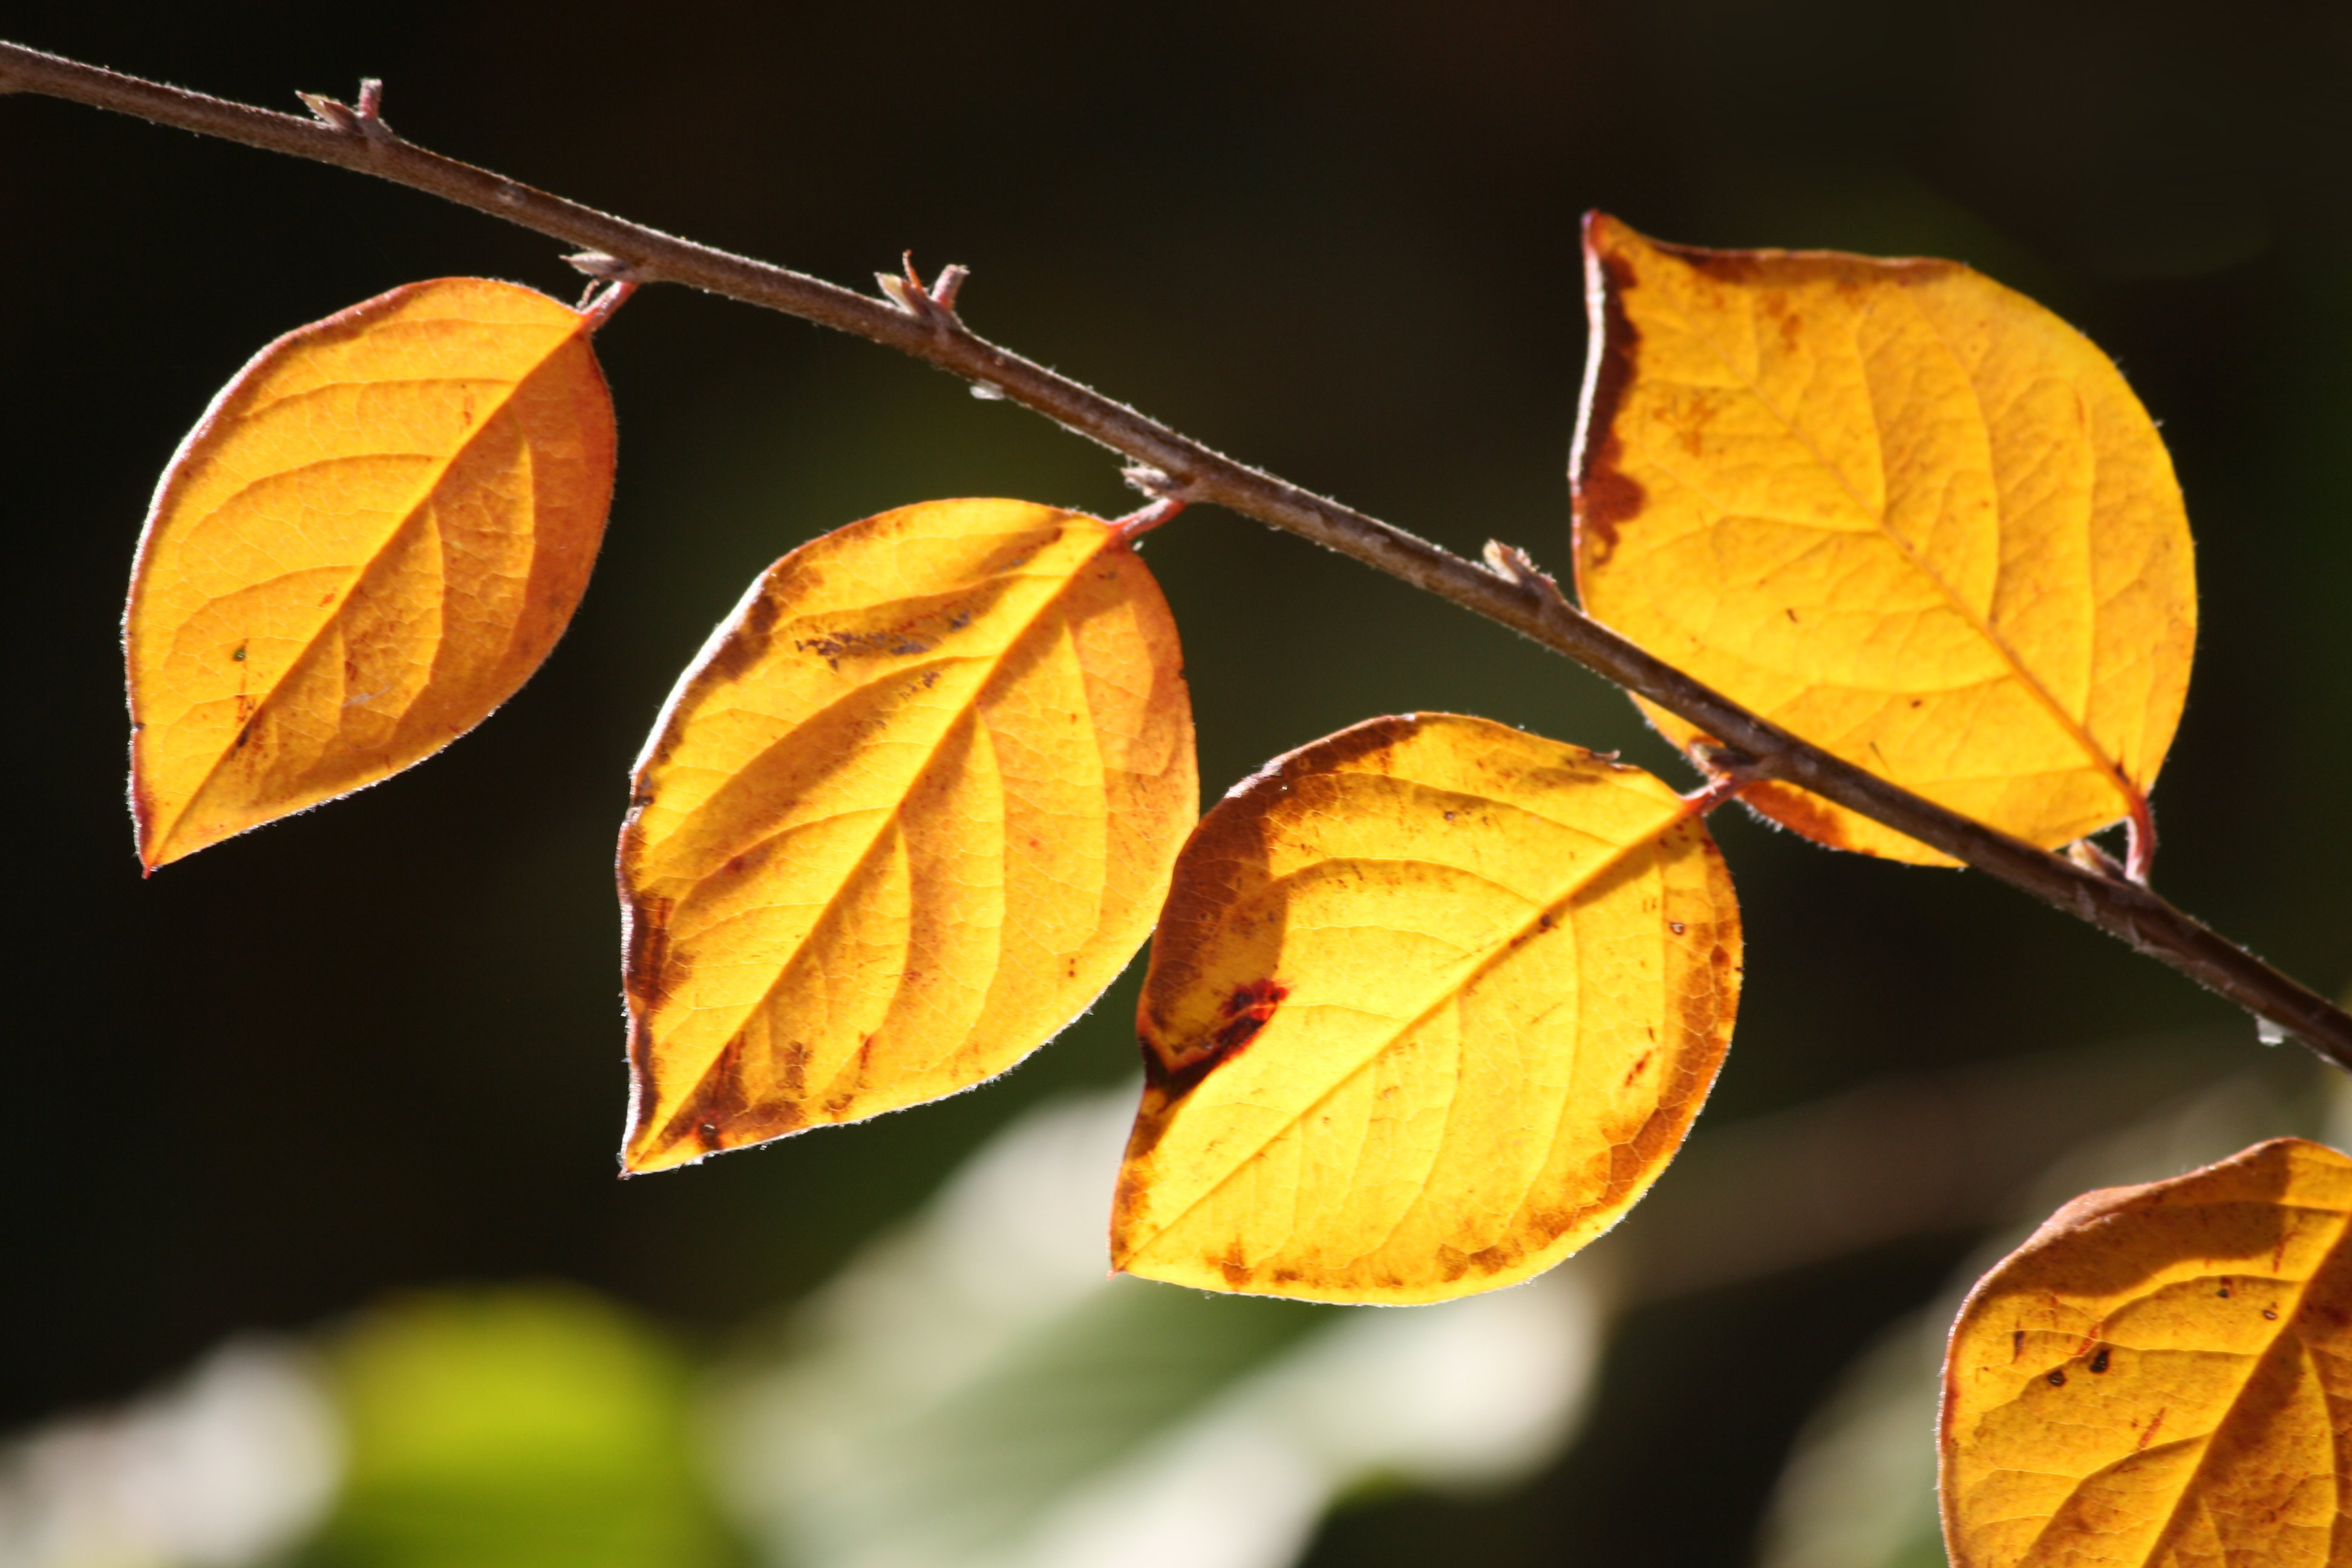 Golden Orange Fall Leaves In Sunlight Closeup Picture Free Photograph Photos Public Domain